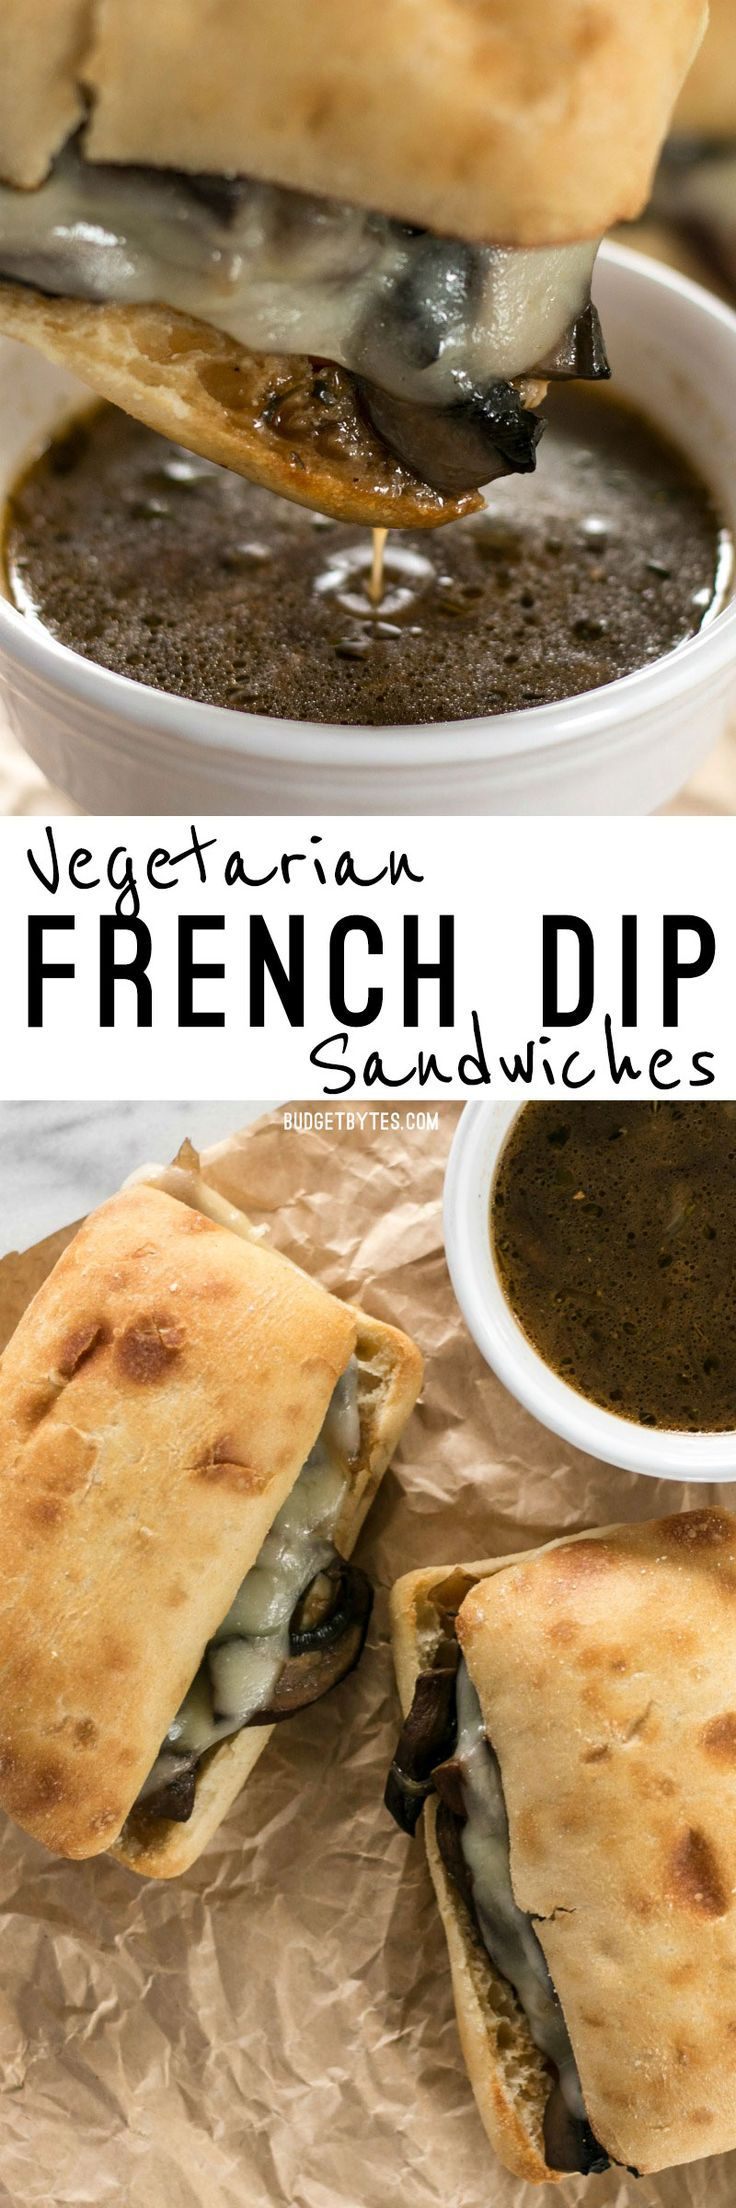 These Vegetarian French Dip Sandwiches are fast, easy, and feature a salty-sweet herb infused vegetarian au jus for dipping. @budgetbytes